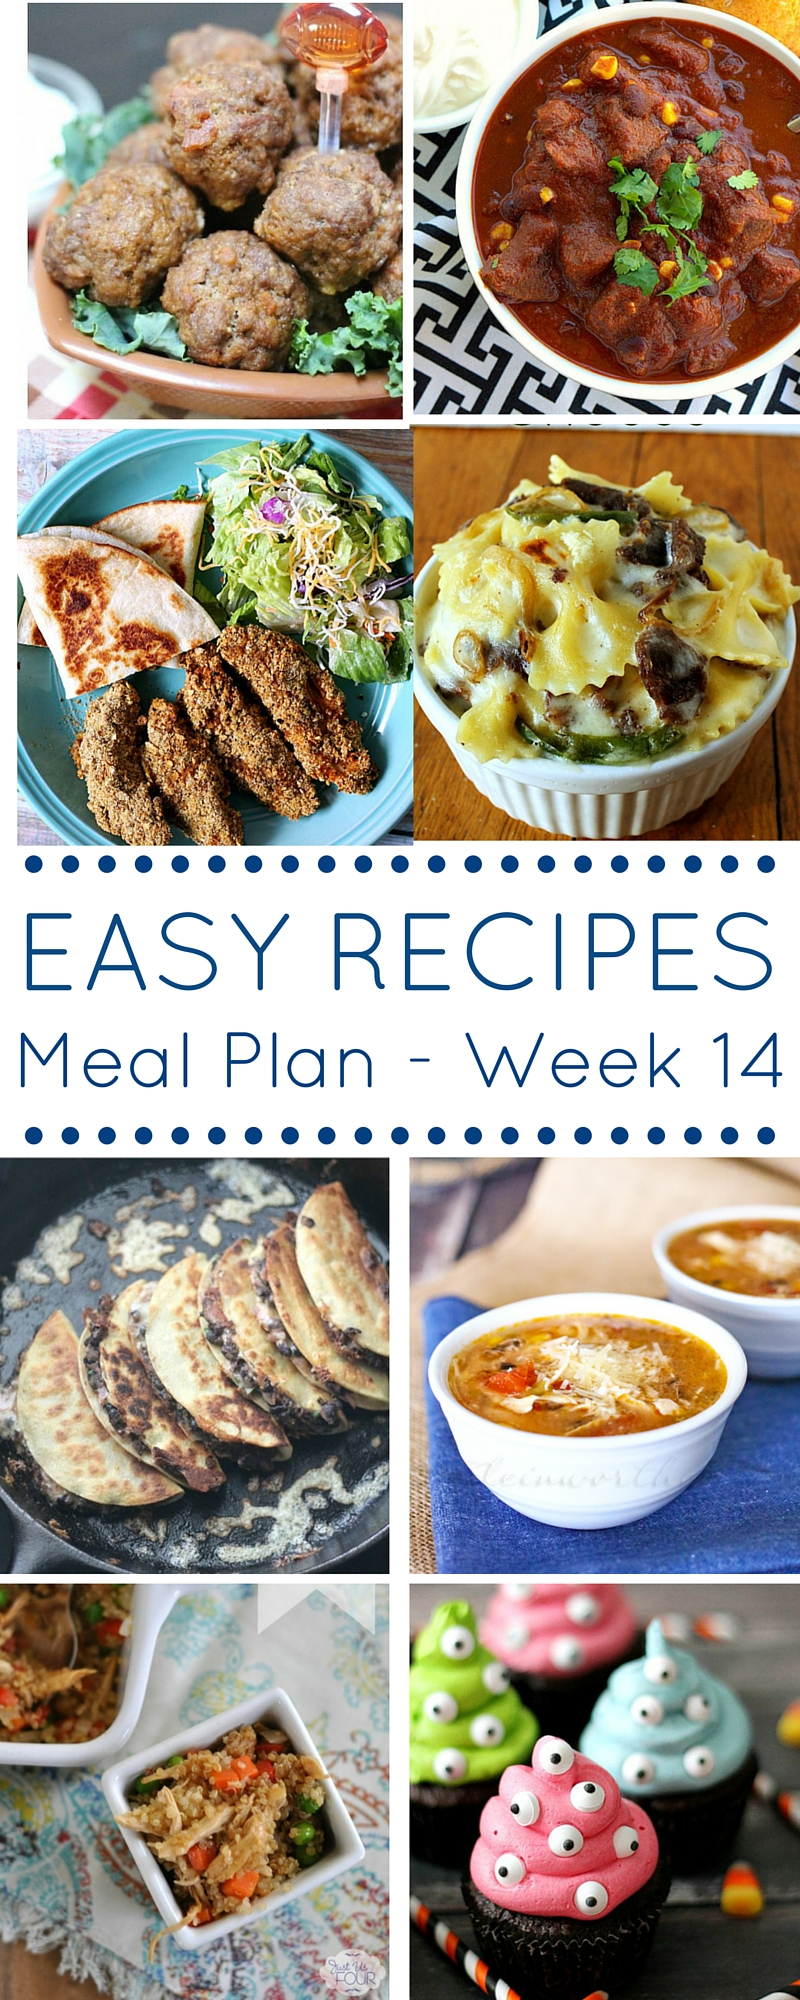 Easy Recipes Meal plan week 14 - delicious dinners and a spooky dessert!